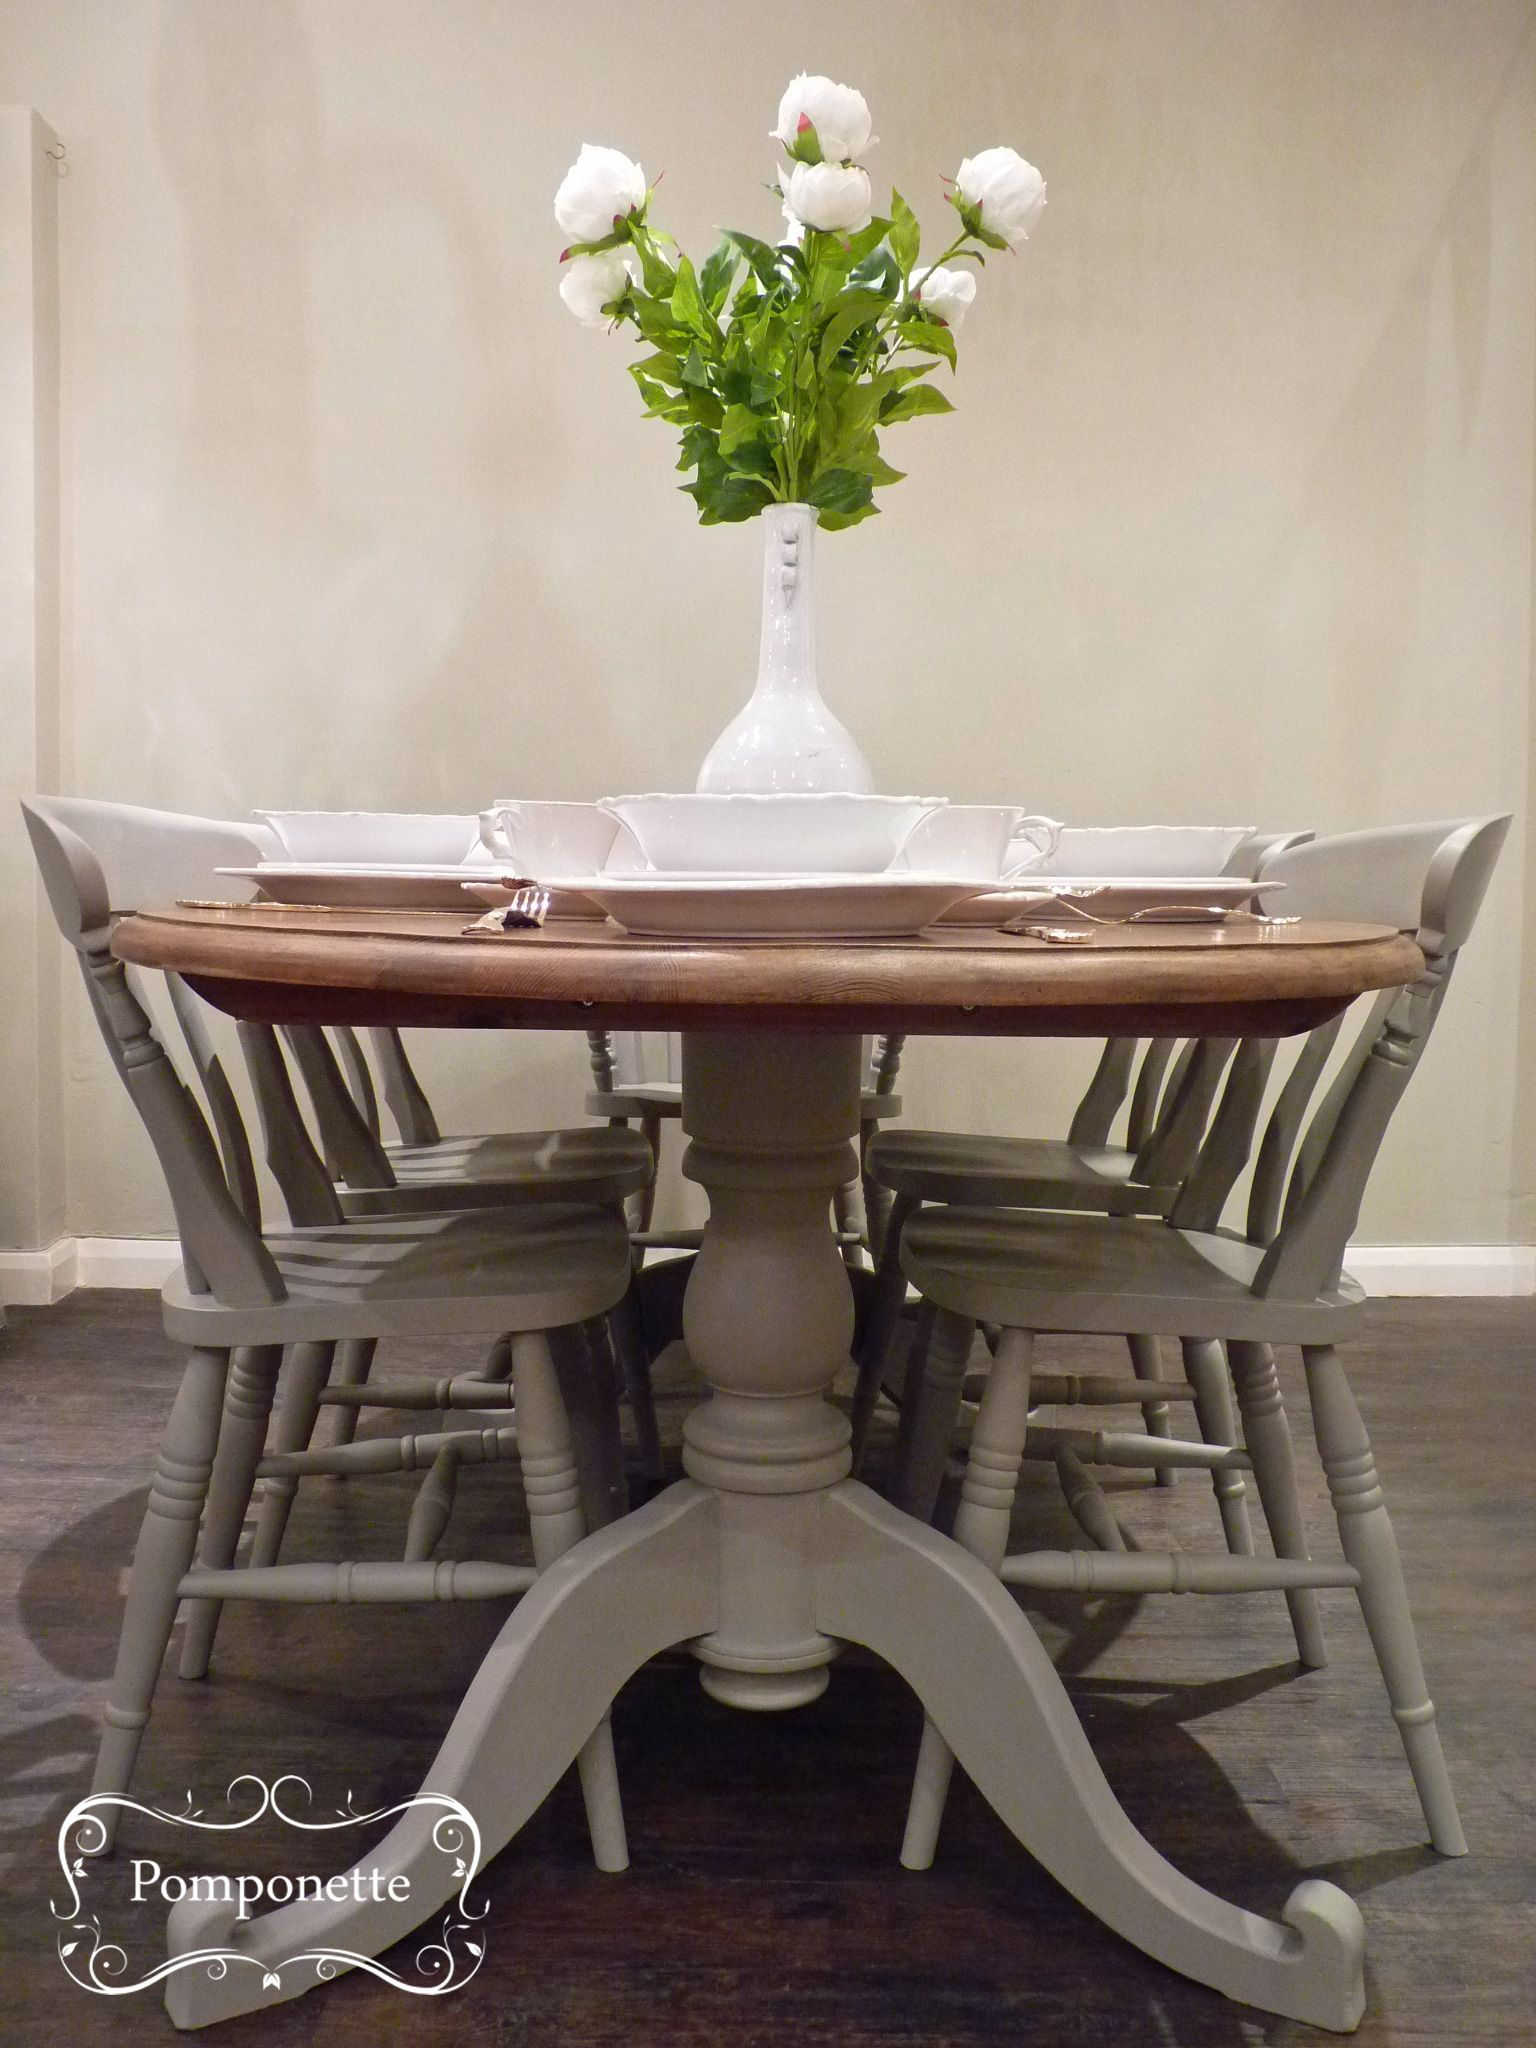 Oval Dining Table Chairs By Pomponette Painted Furniture